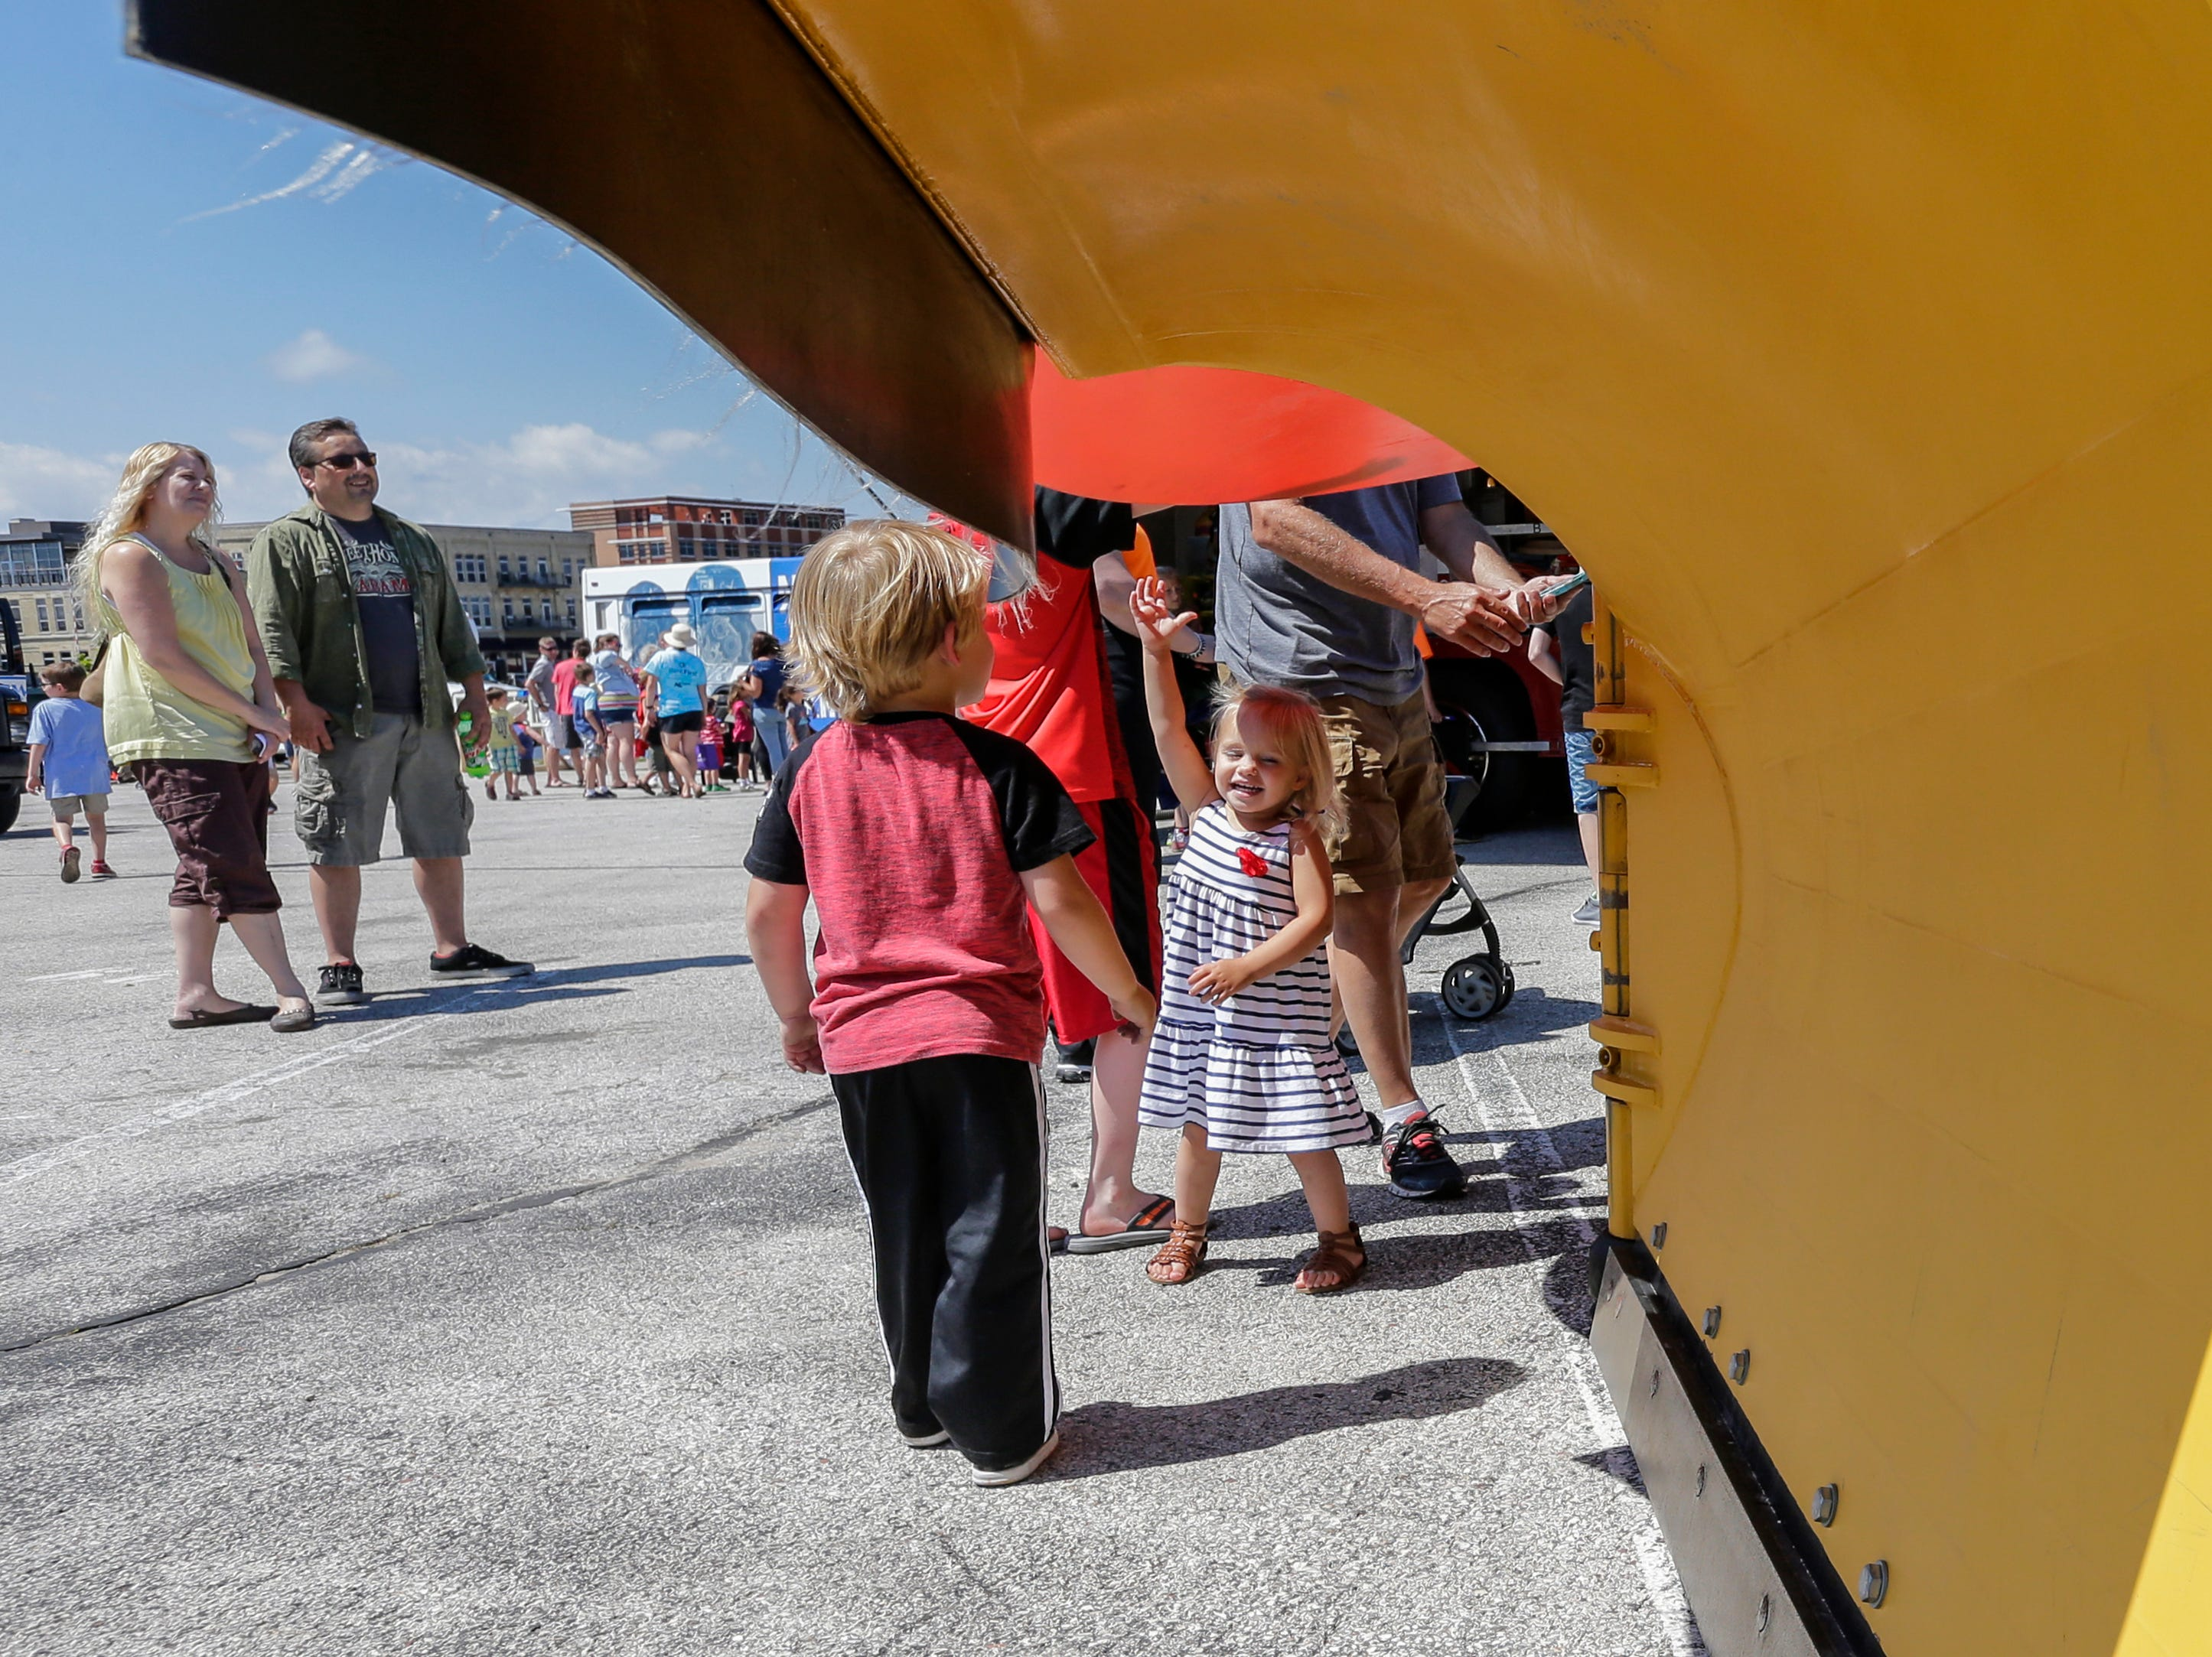 Chloe Derby, 2, tries to touch the top of the city's snow plow during the Touch the Trucks event put on by the library's children's service department Wednesday, July 18, 2018, in Manitowoc, Wis. Josh Clark/USA TODAY NETWORK-Wisconsin